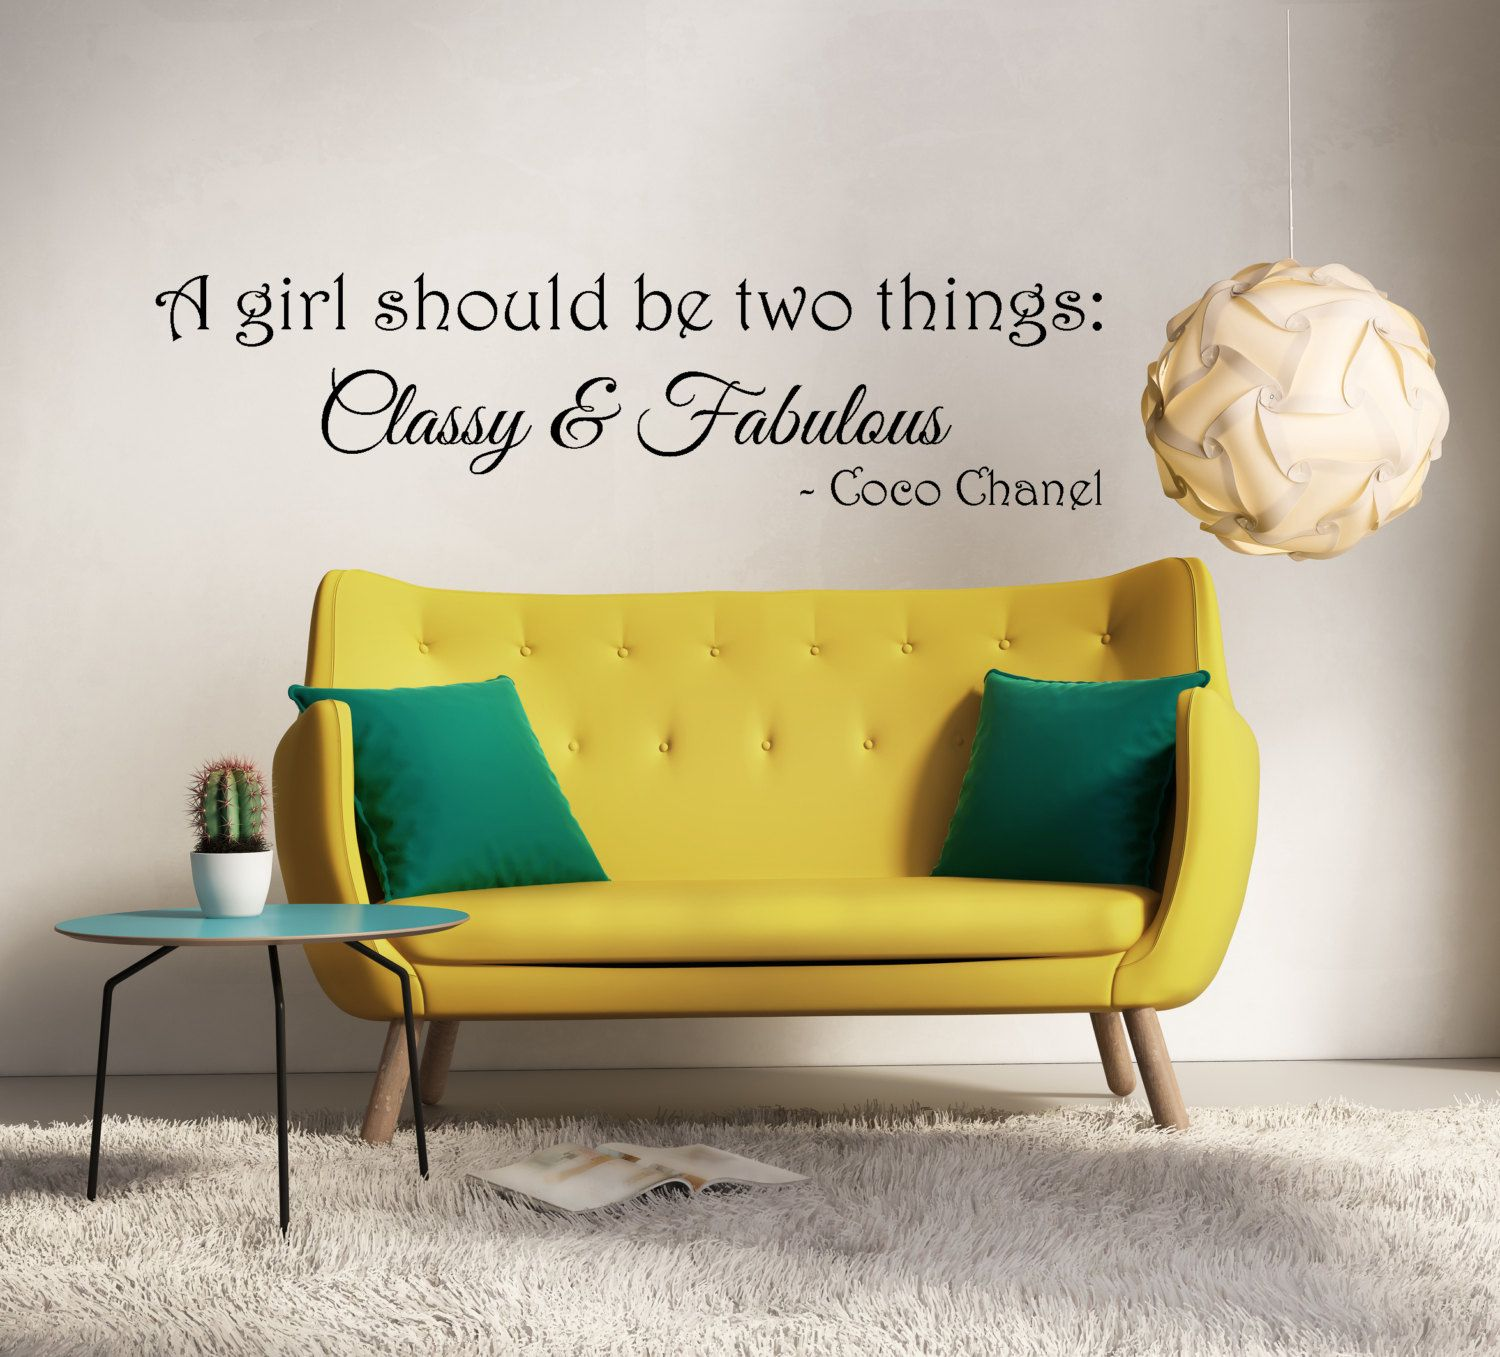 Coco Chanel Inspired Wall Decal Sticker - Every girl should be two ...